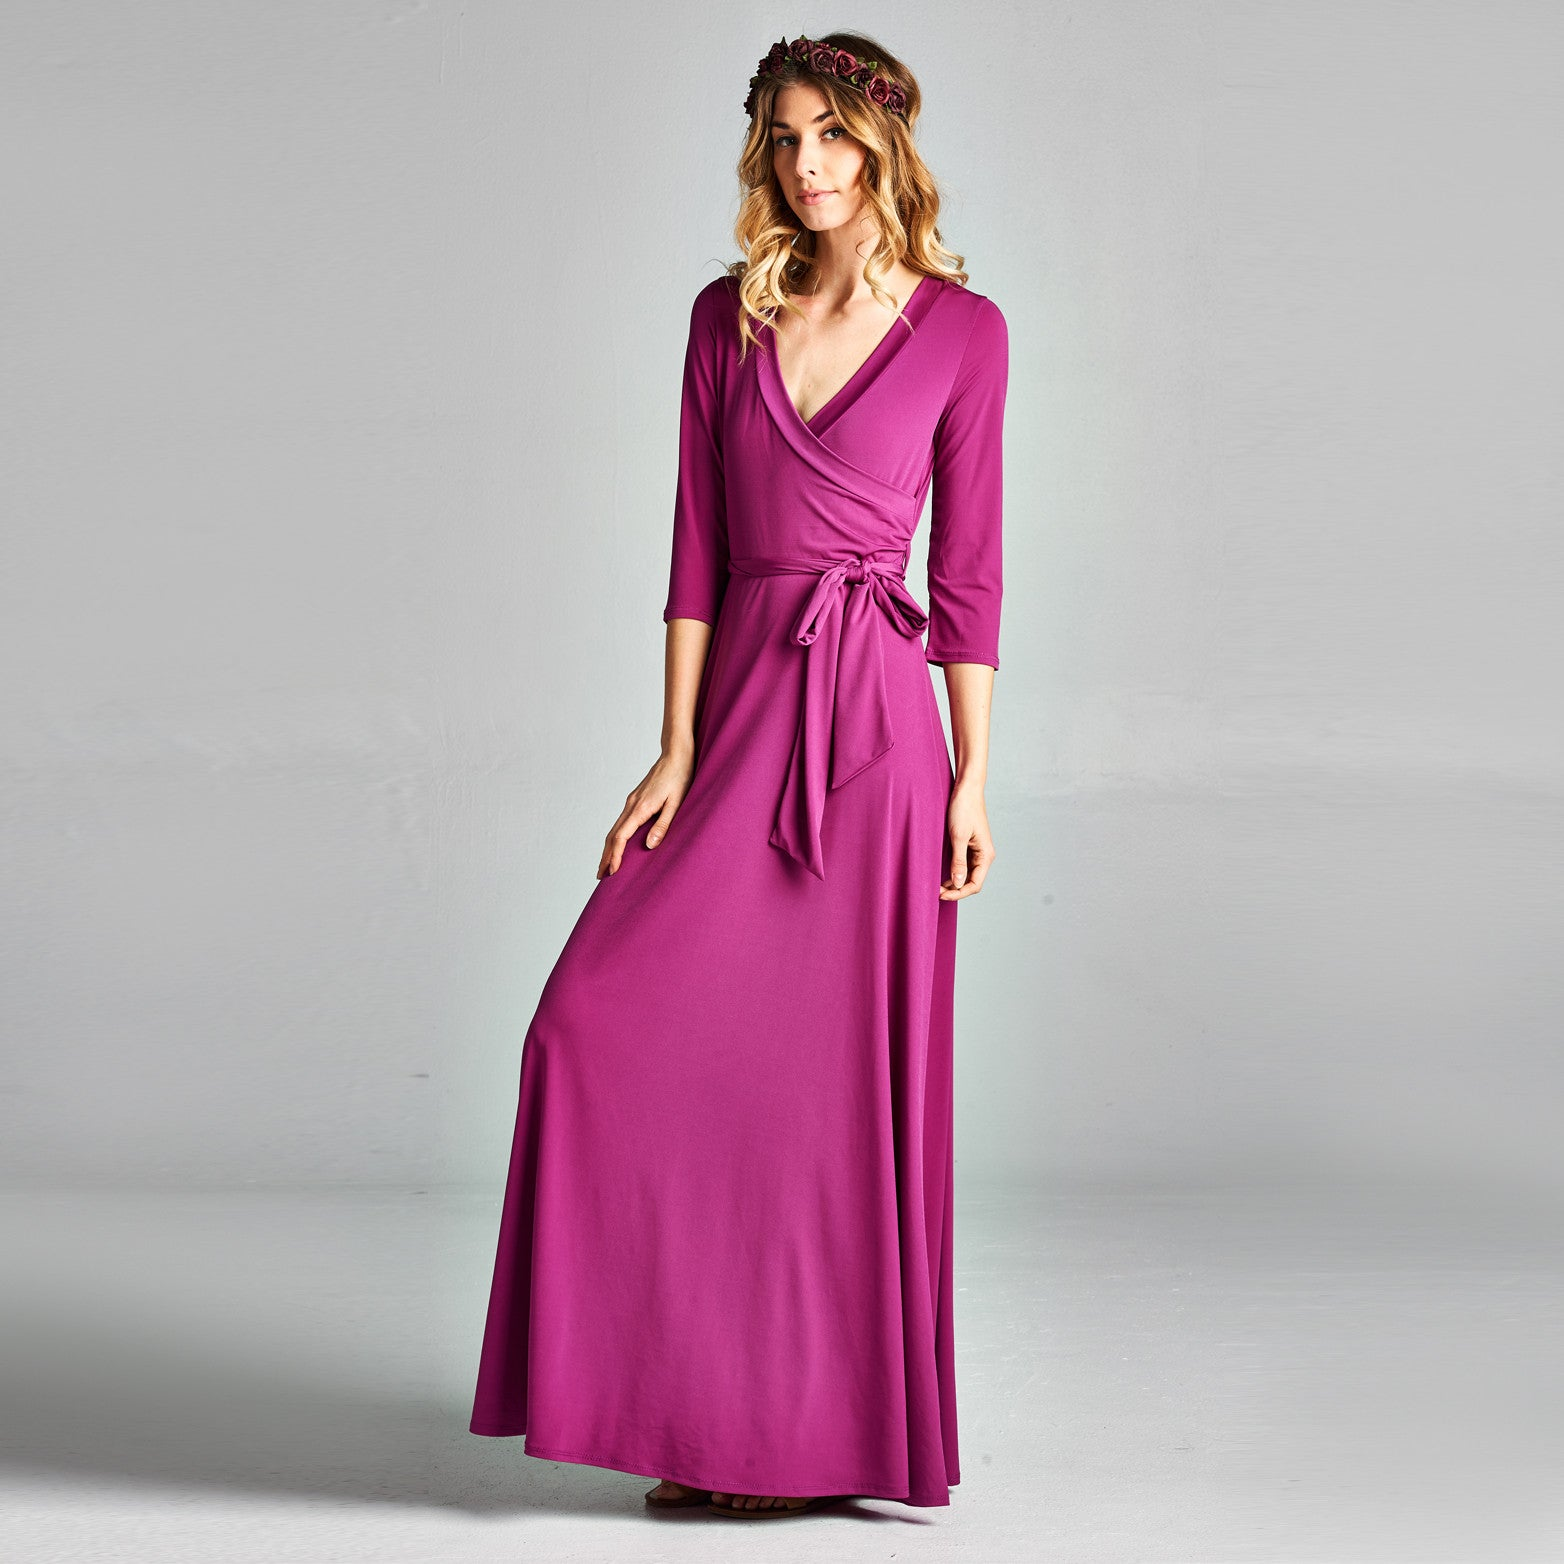 Sweetheart Venechia Wrap Dress - Love, Kuza